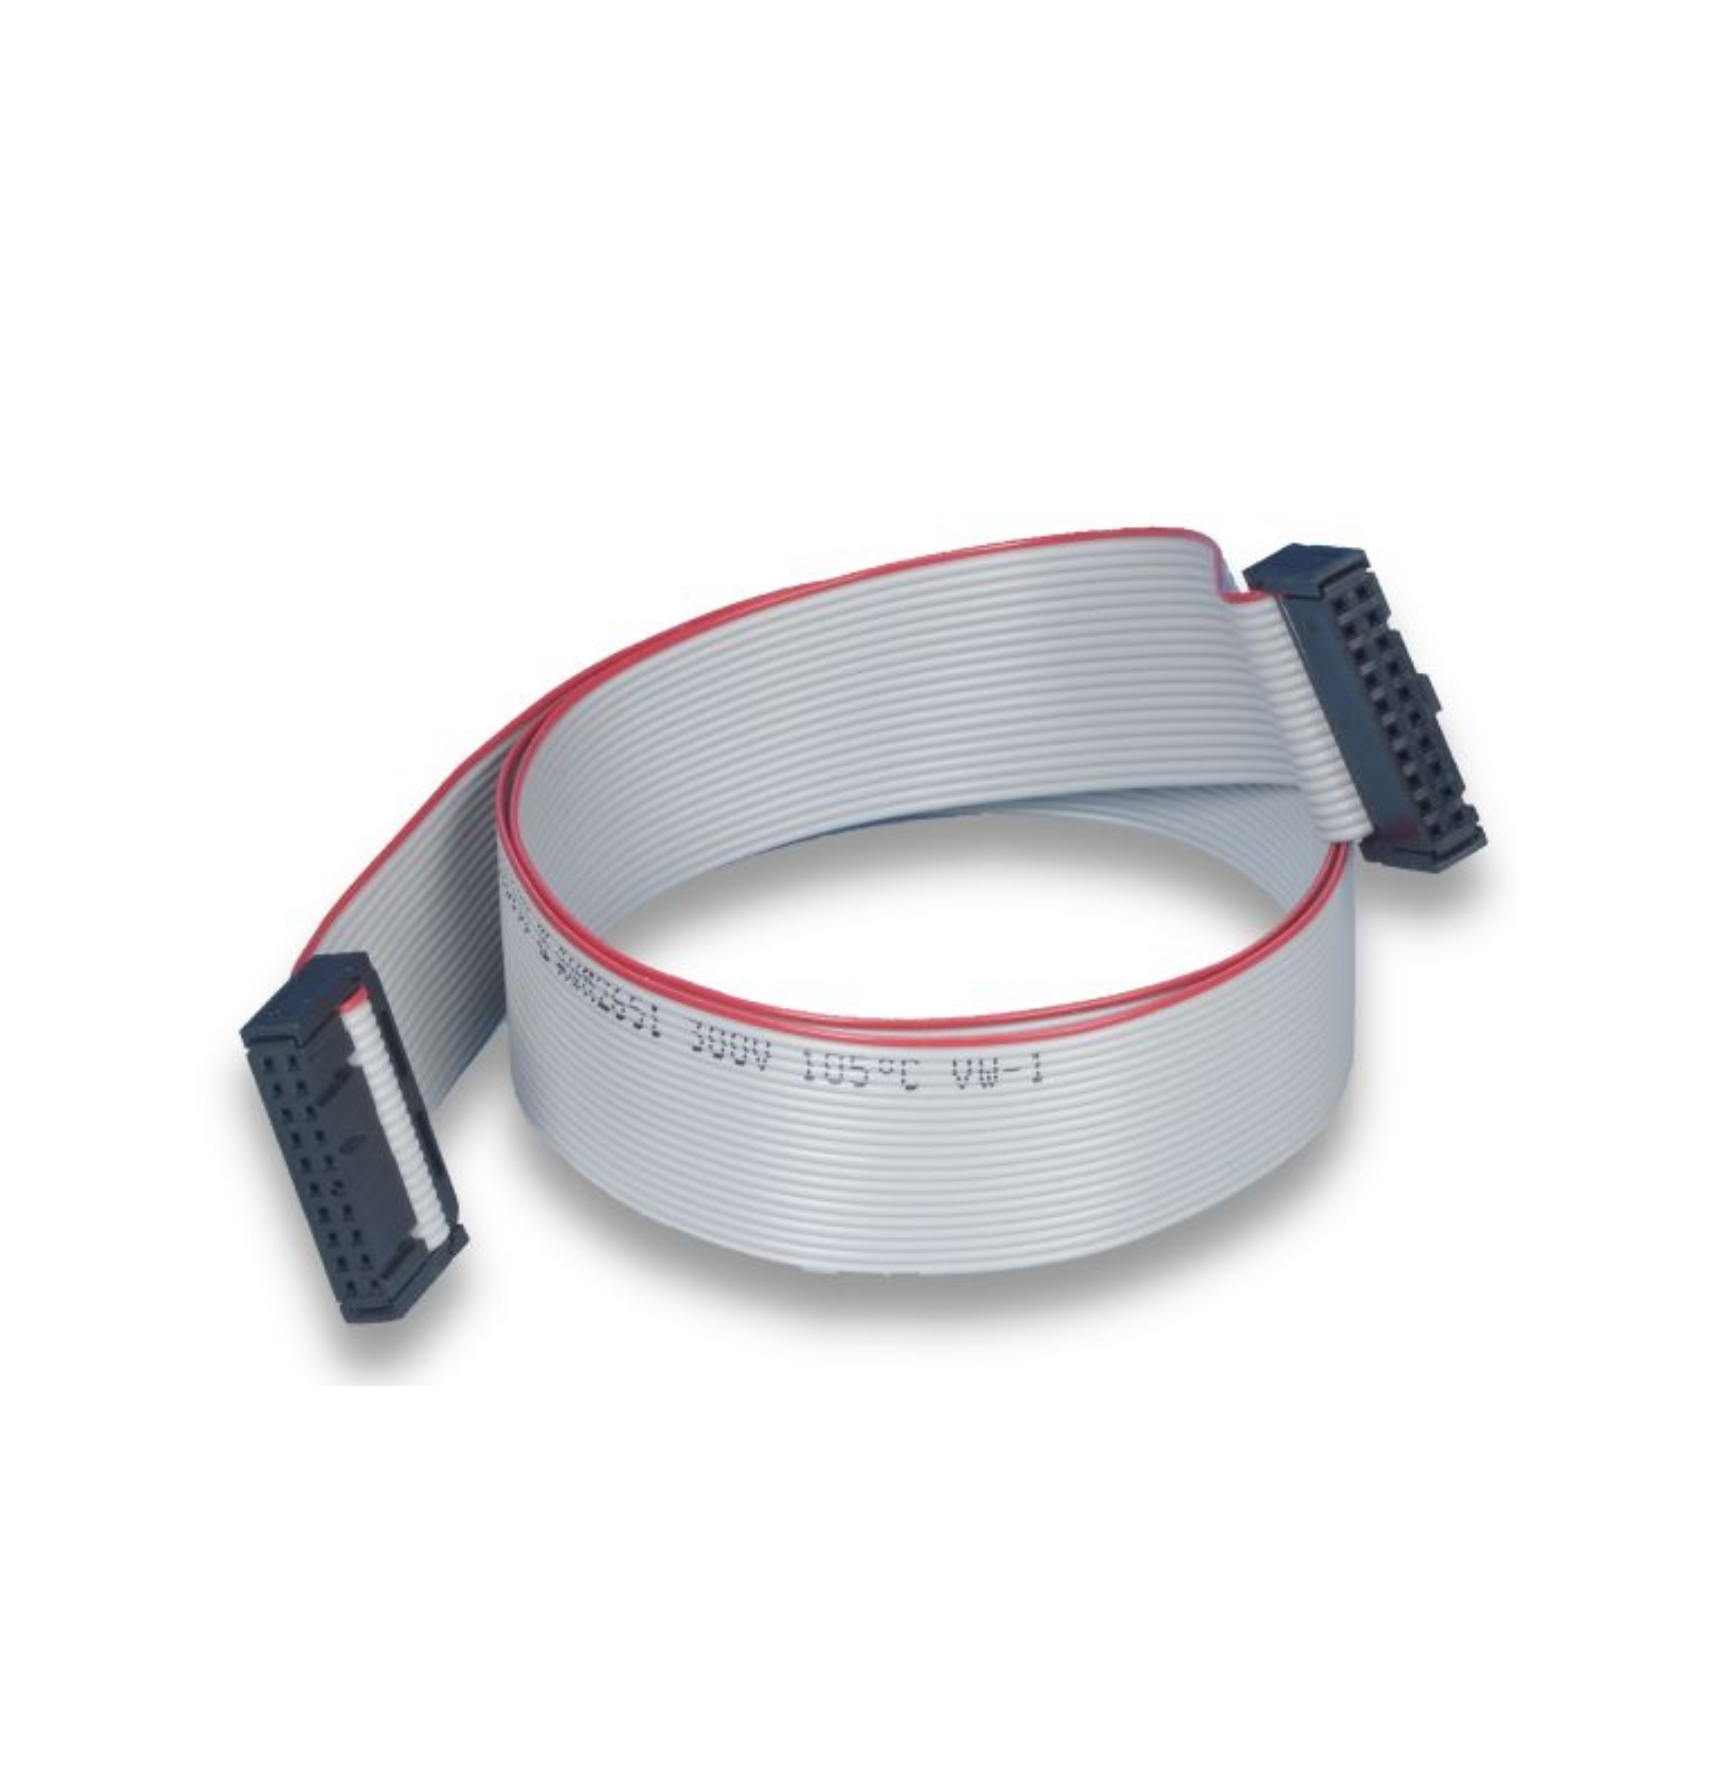 FLAT CABLE P/ CP CAT-VOZ 128